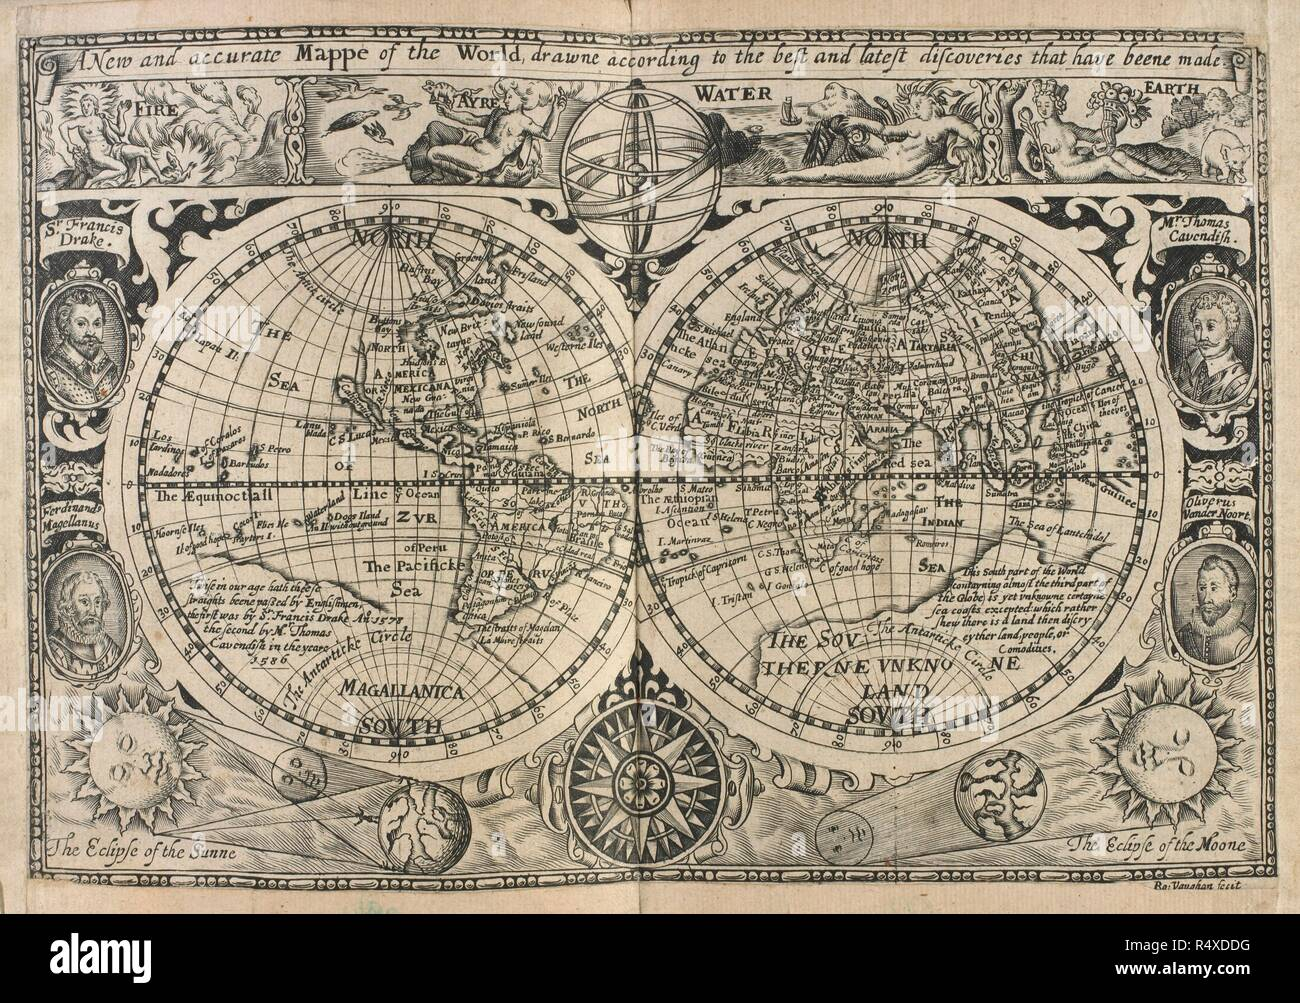 A New And Accurate Map Of The World 1628.Mappe Of The World Drawn In 1628 A New And Accurate Mappe Of The